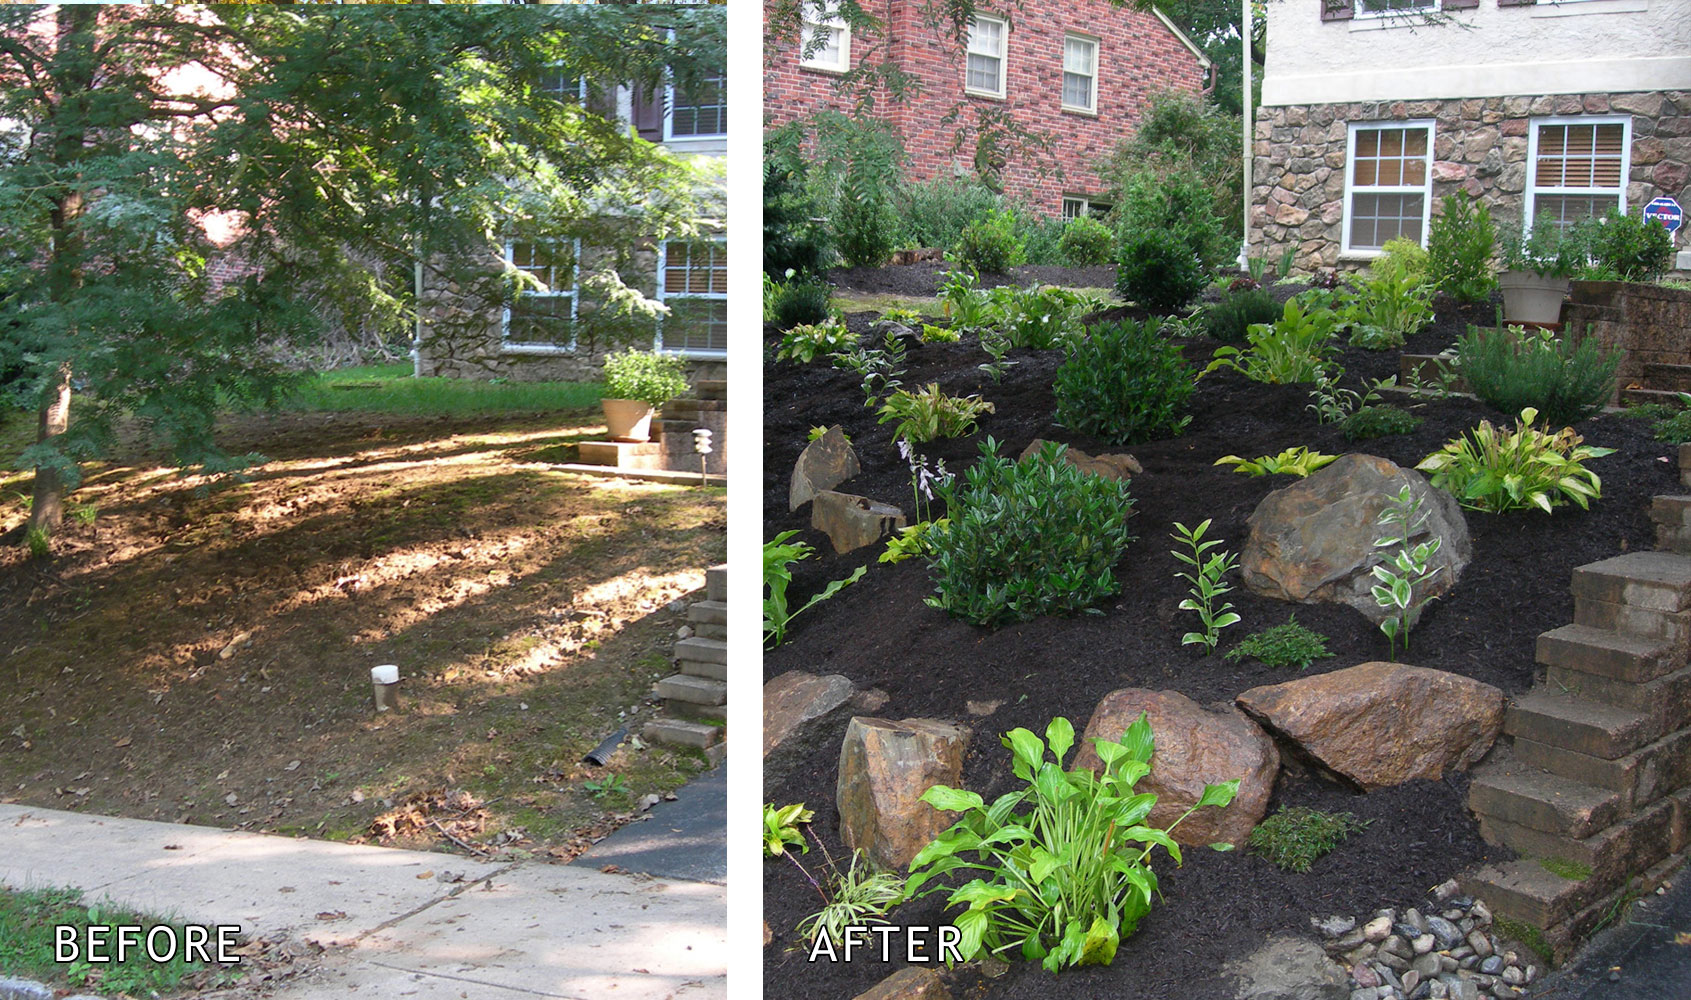 Landscaping is the first impression for home buyers